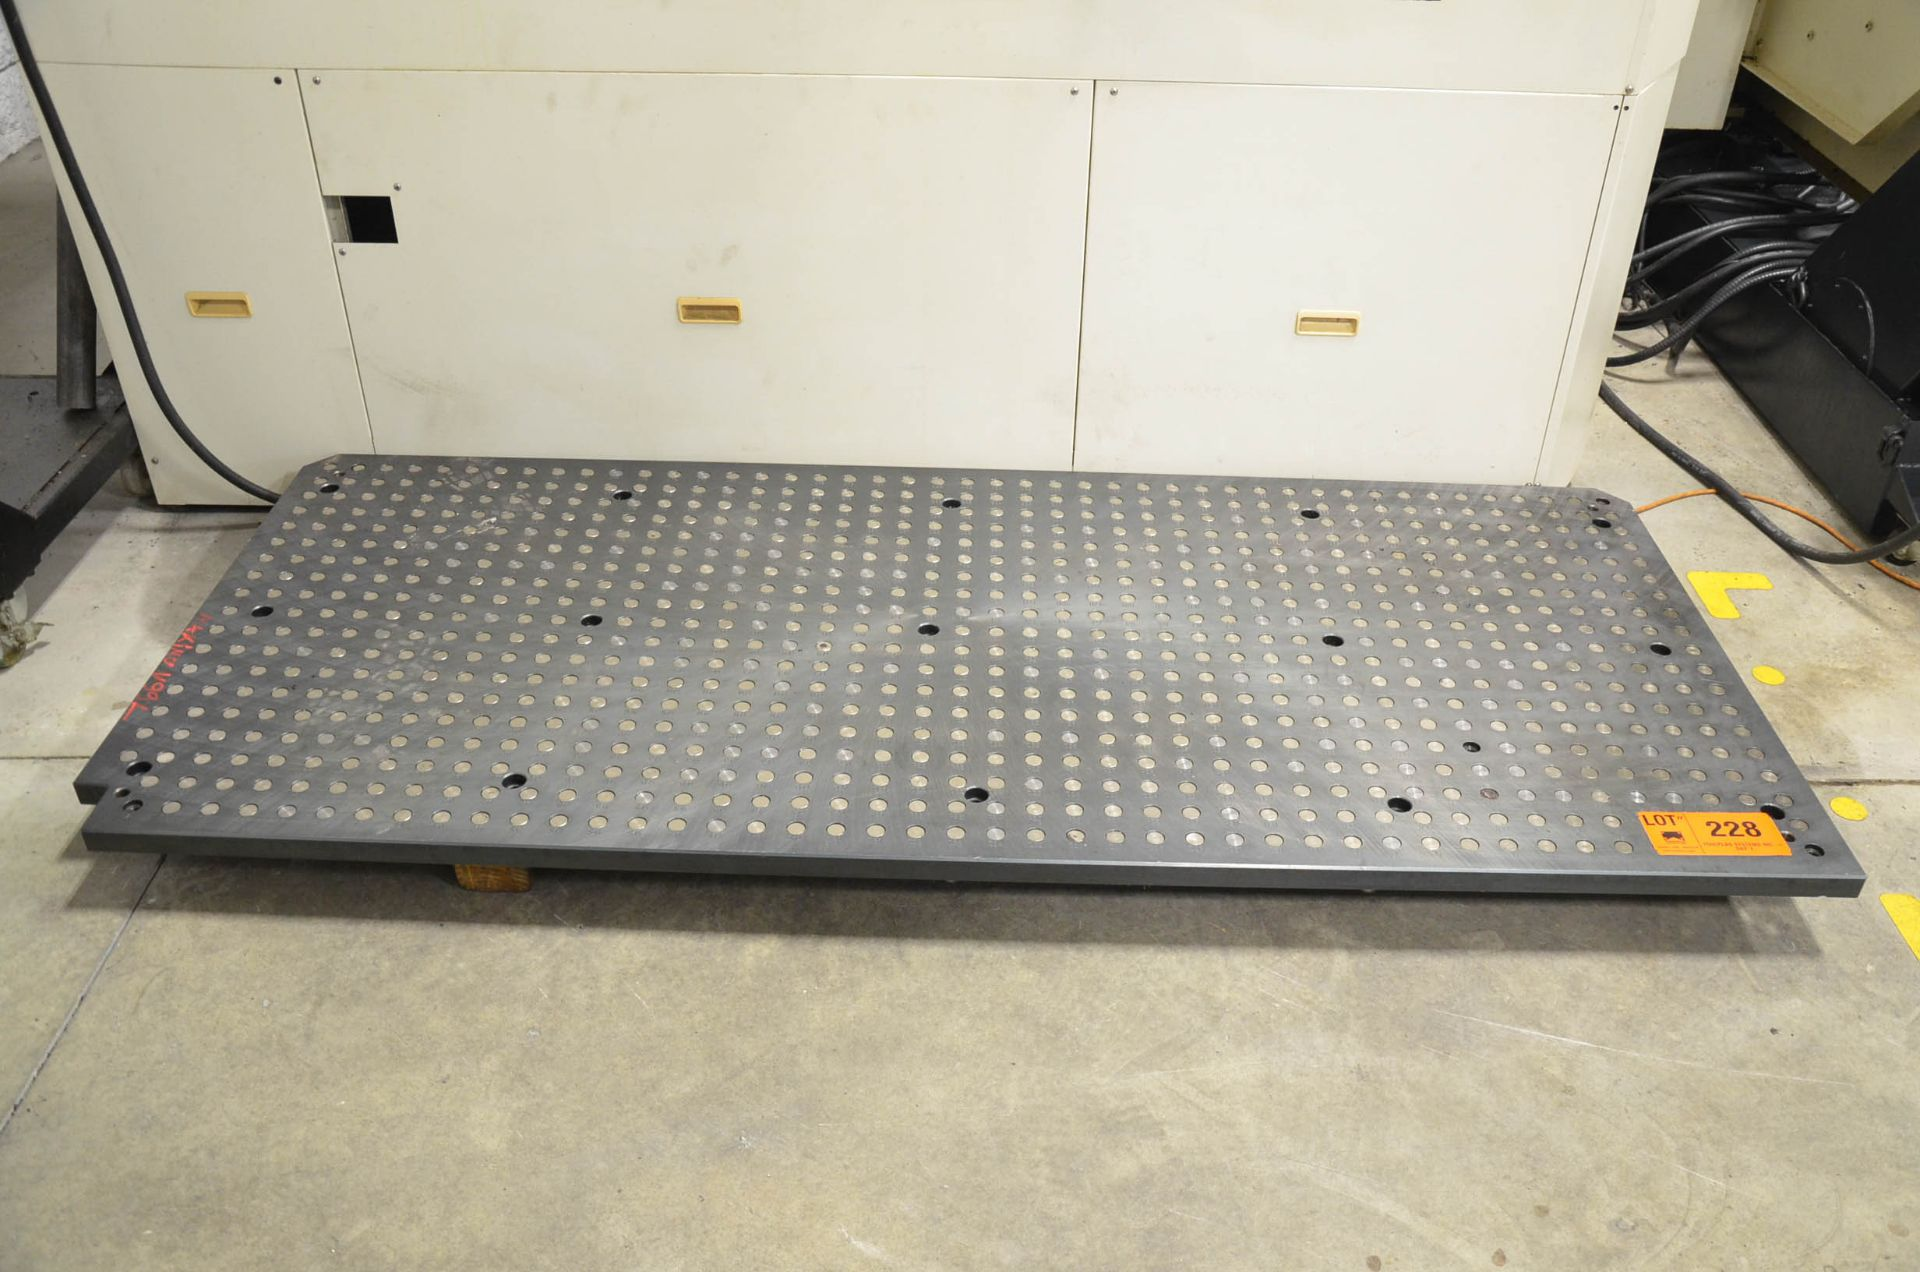 """39.37""""X90.55"""" SUB-TABLE WITH FCS SYSTEM CLAMPING"""